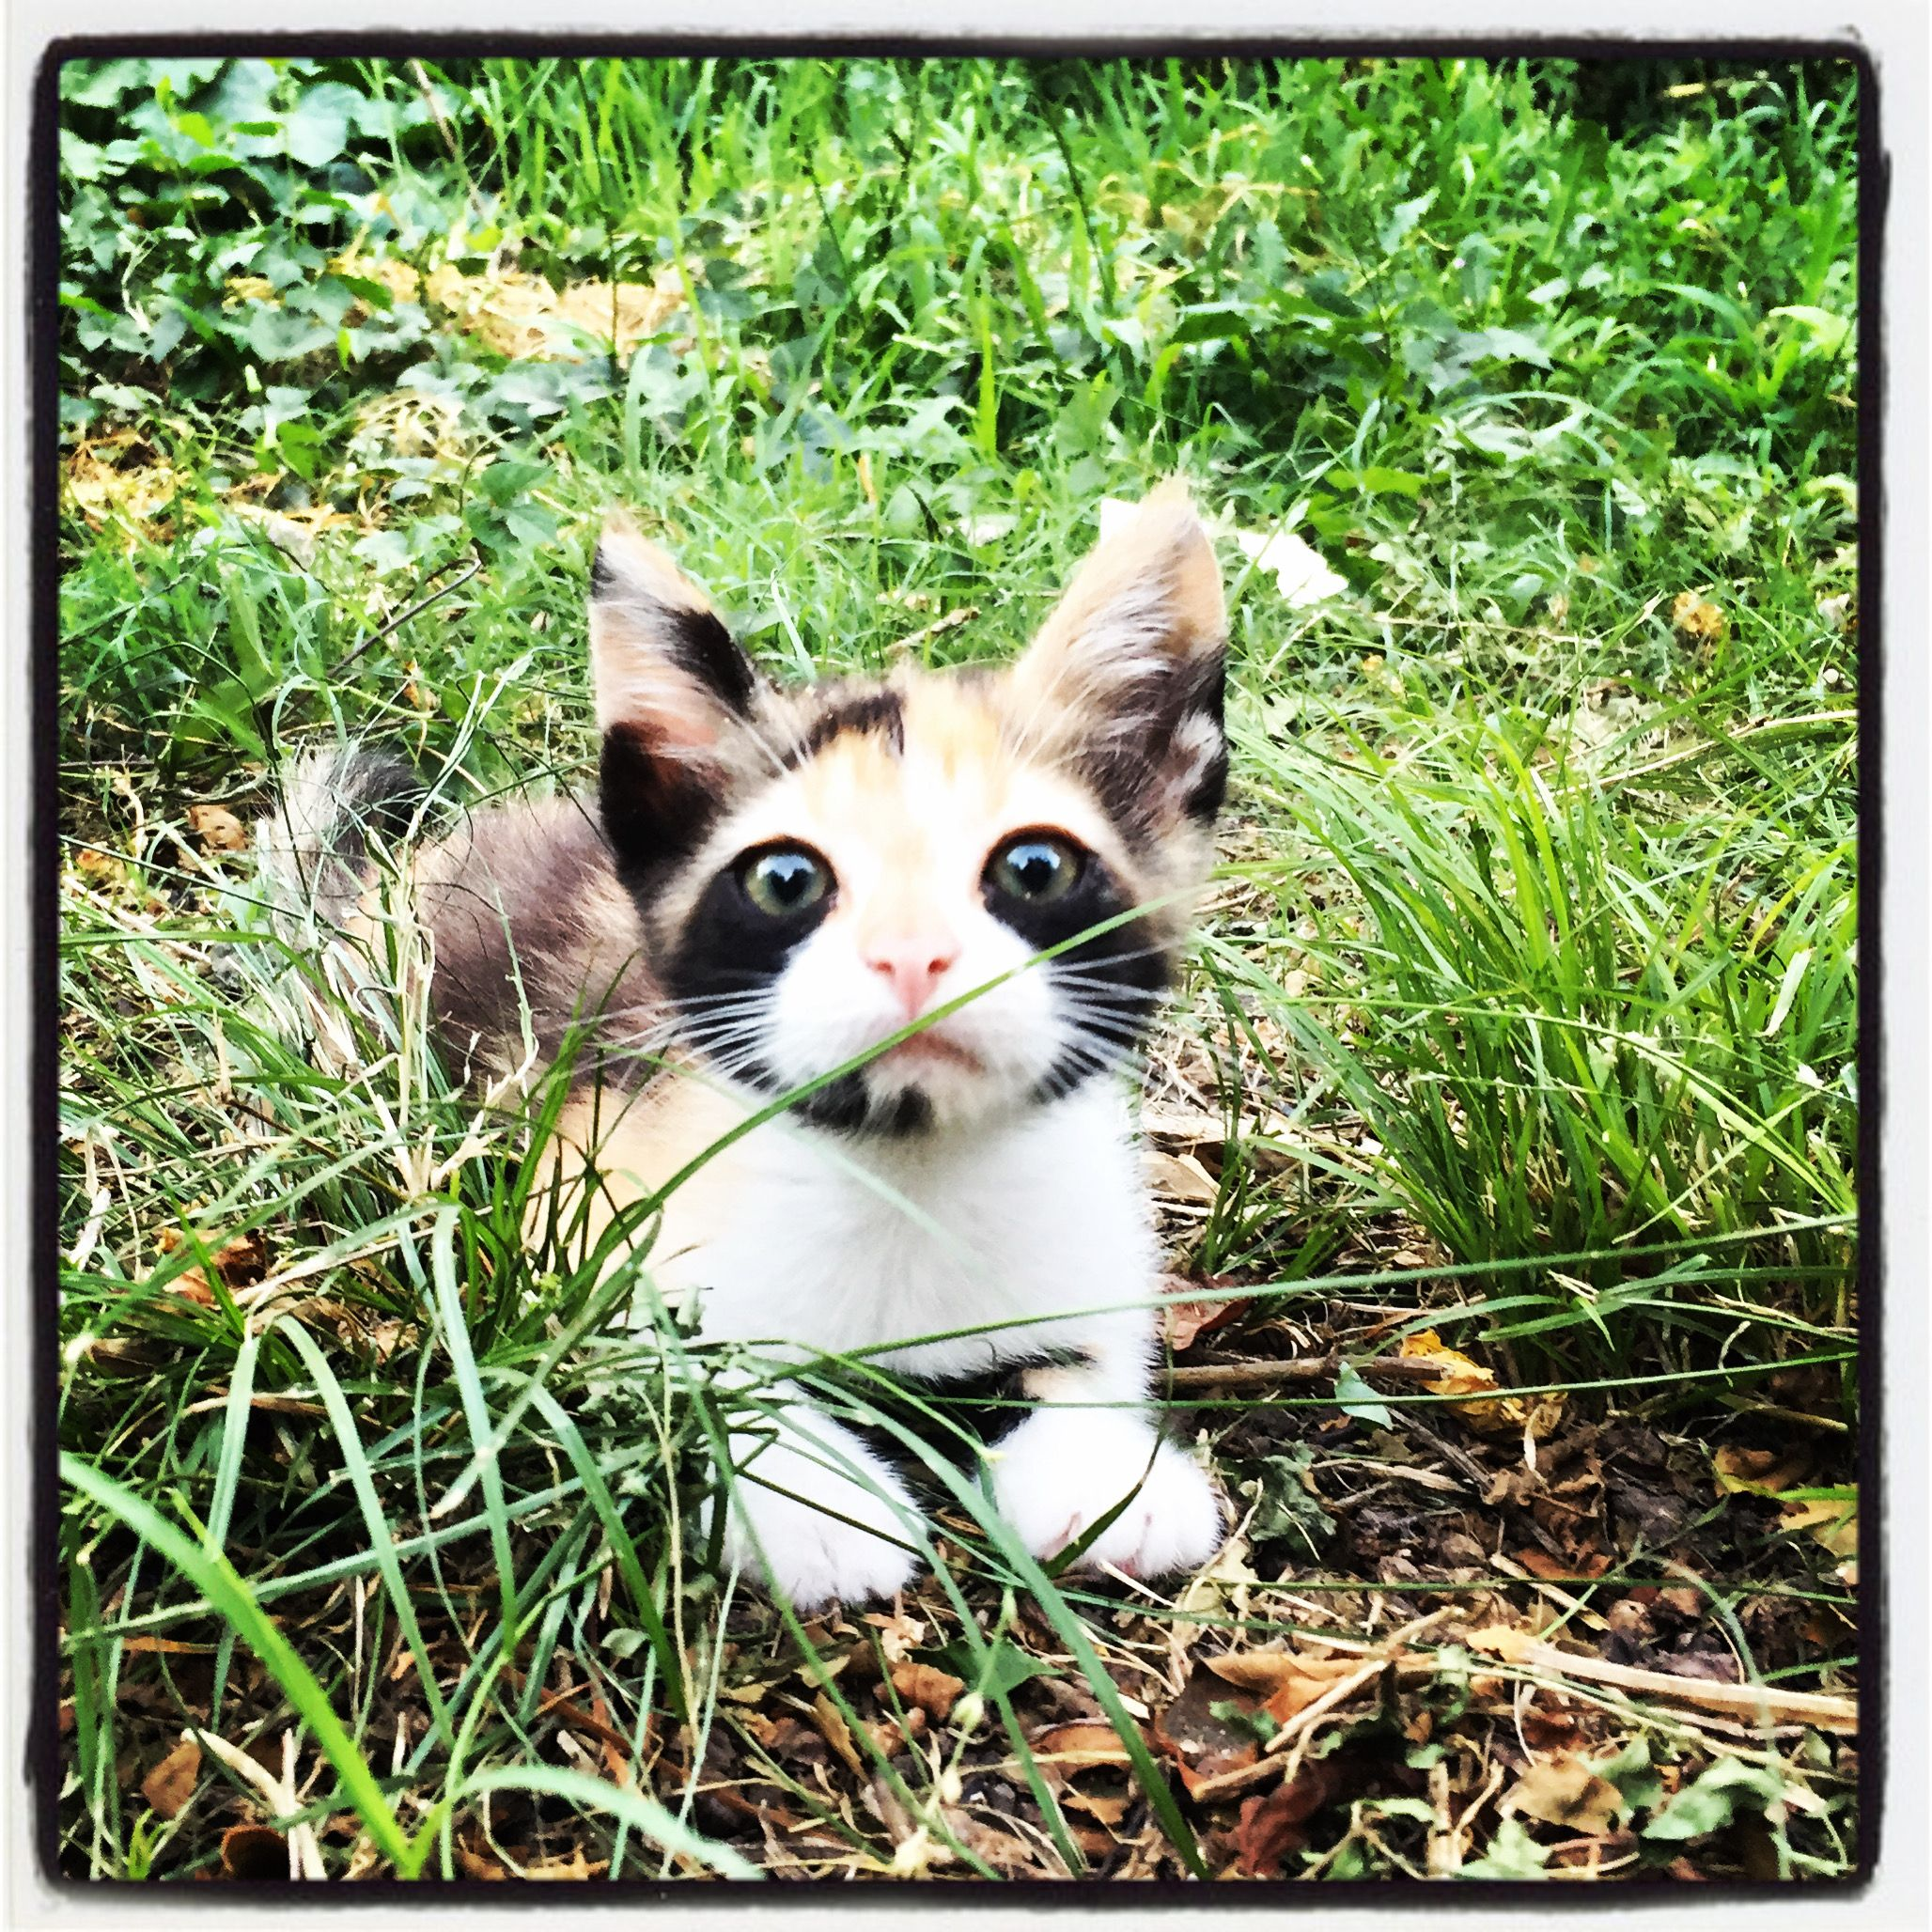 Baby Calico Cat In 2020 Kittens Cutest Calico Cat Beautiful Cats